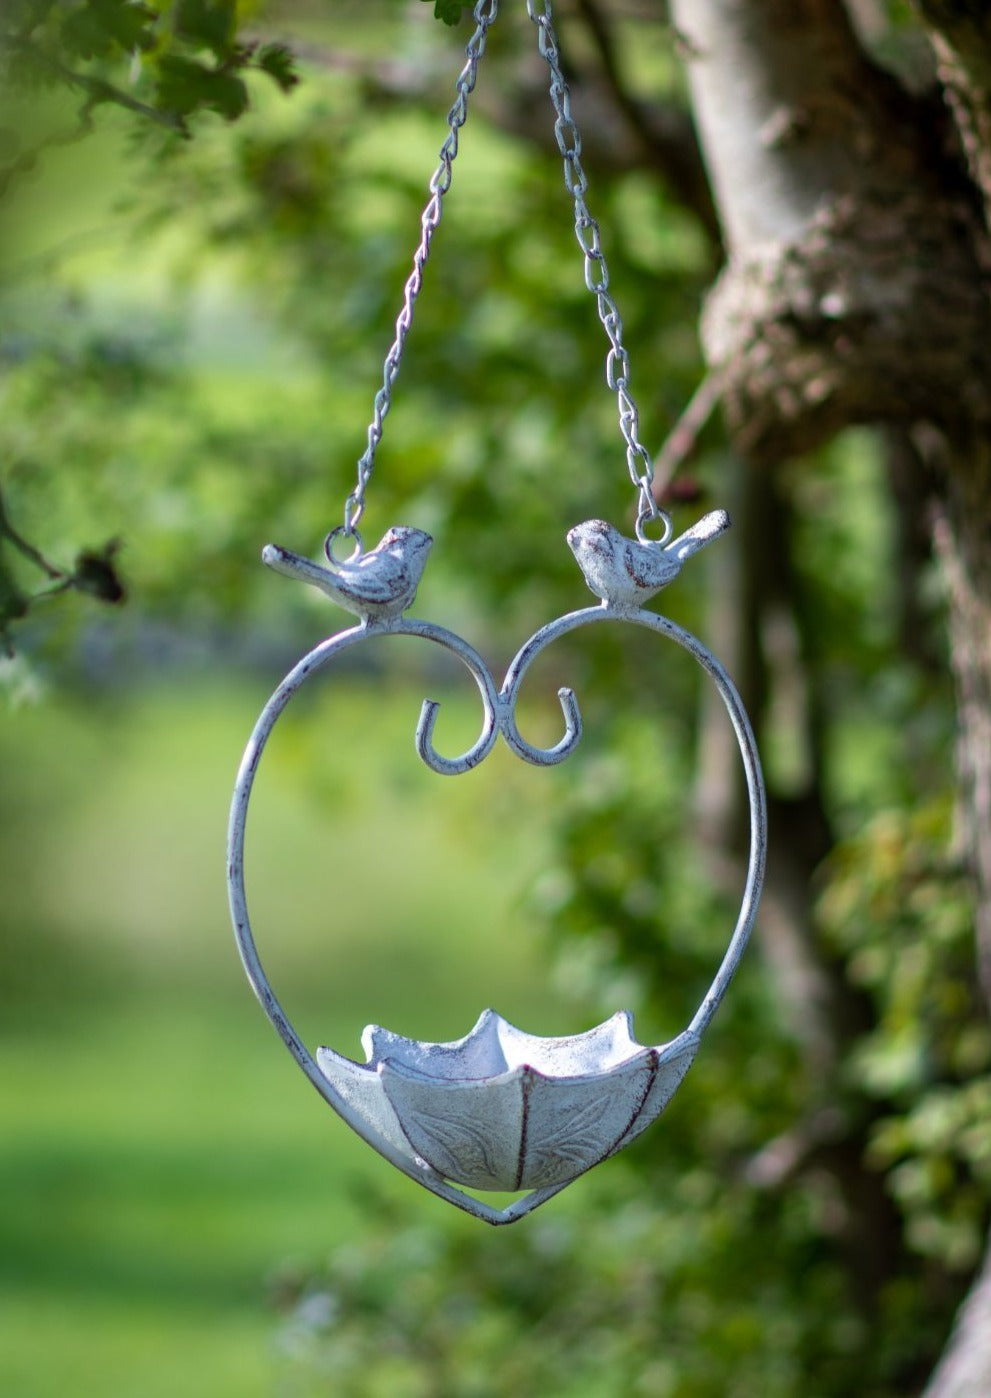 Heart Hanging Bird Feeder - Pre-order for 01/02/2021